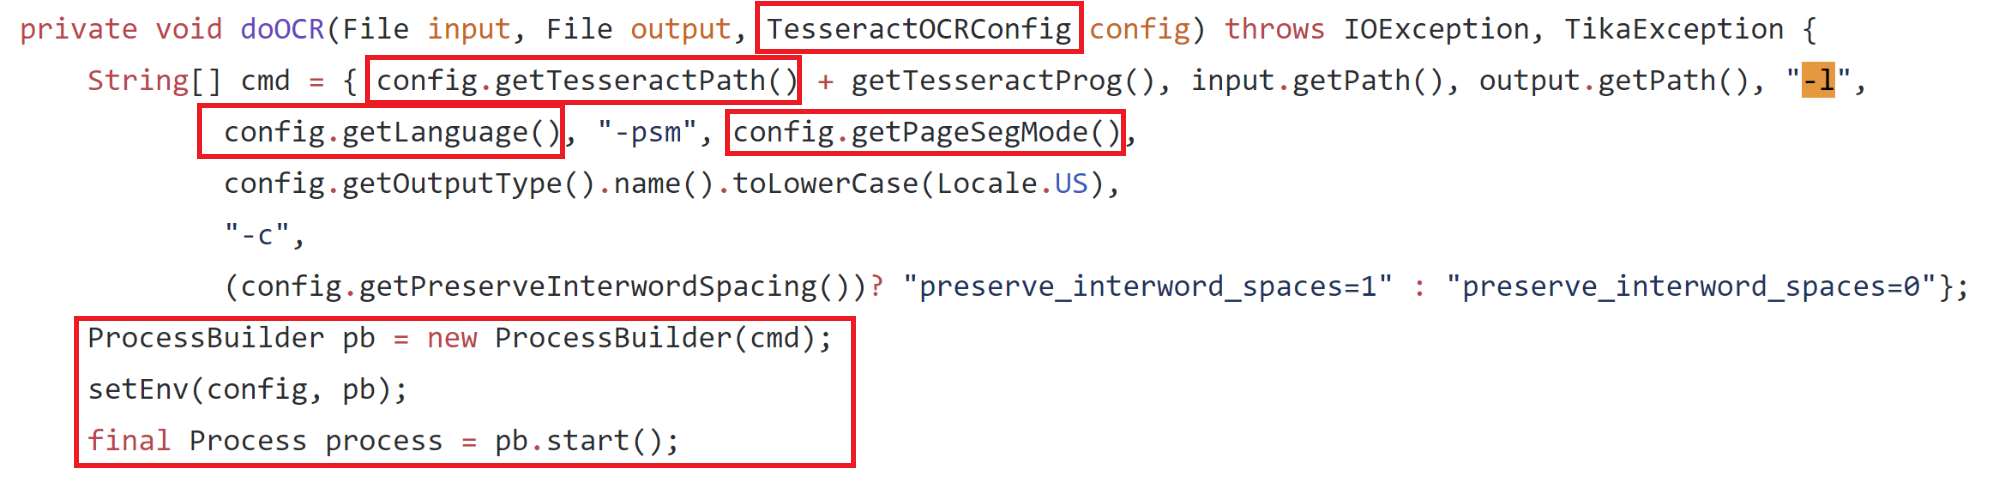 Exploiting CVE-2018-1335: Command Injection in Apache Tika